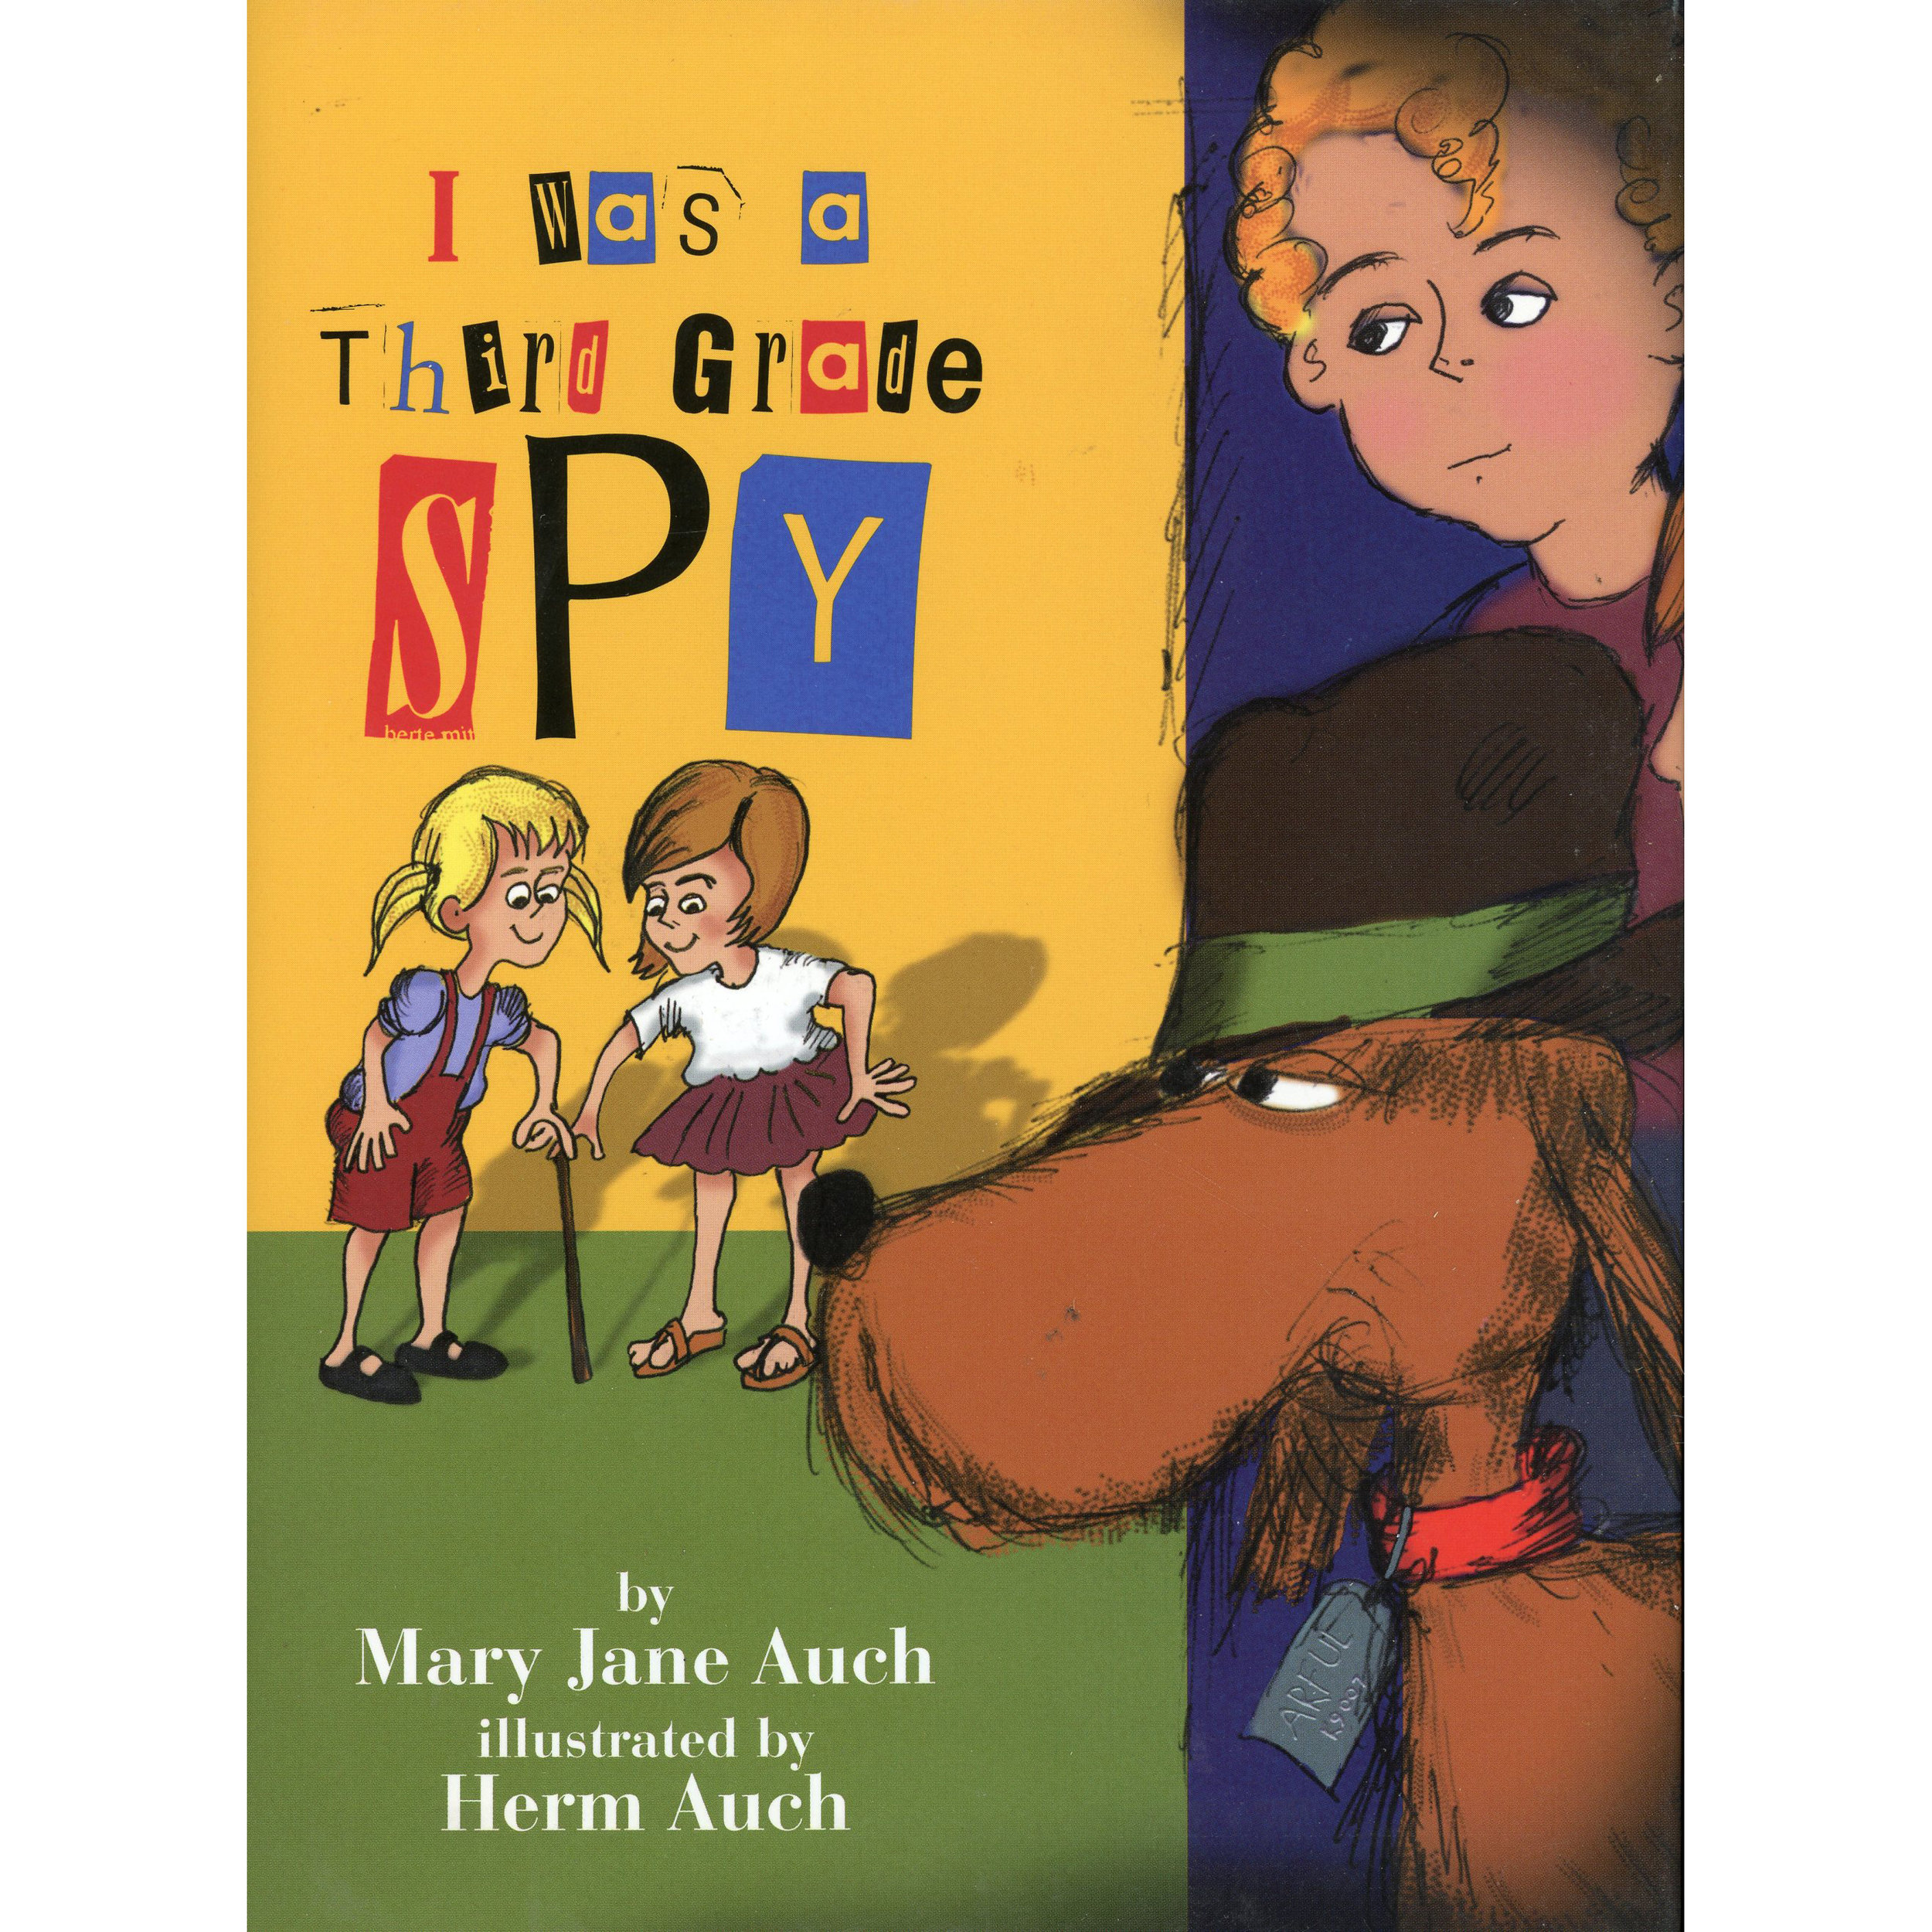 thirdgrde Spy.jpg